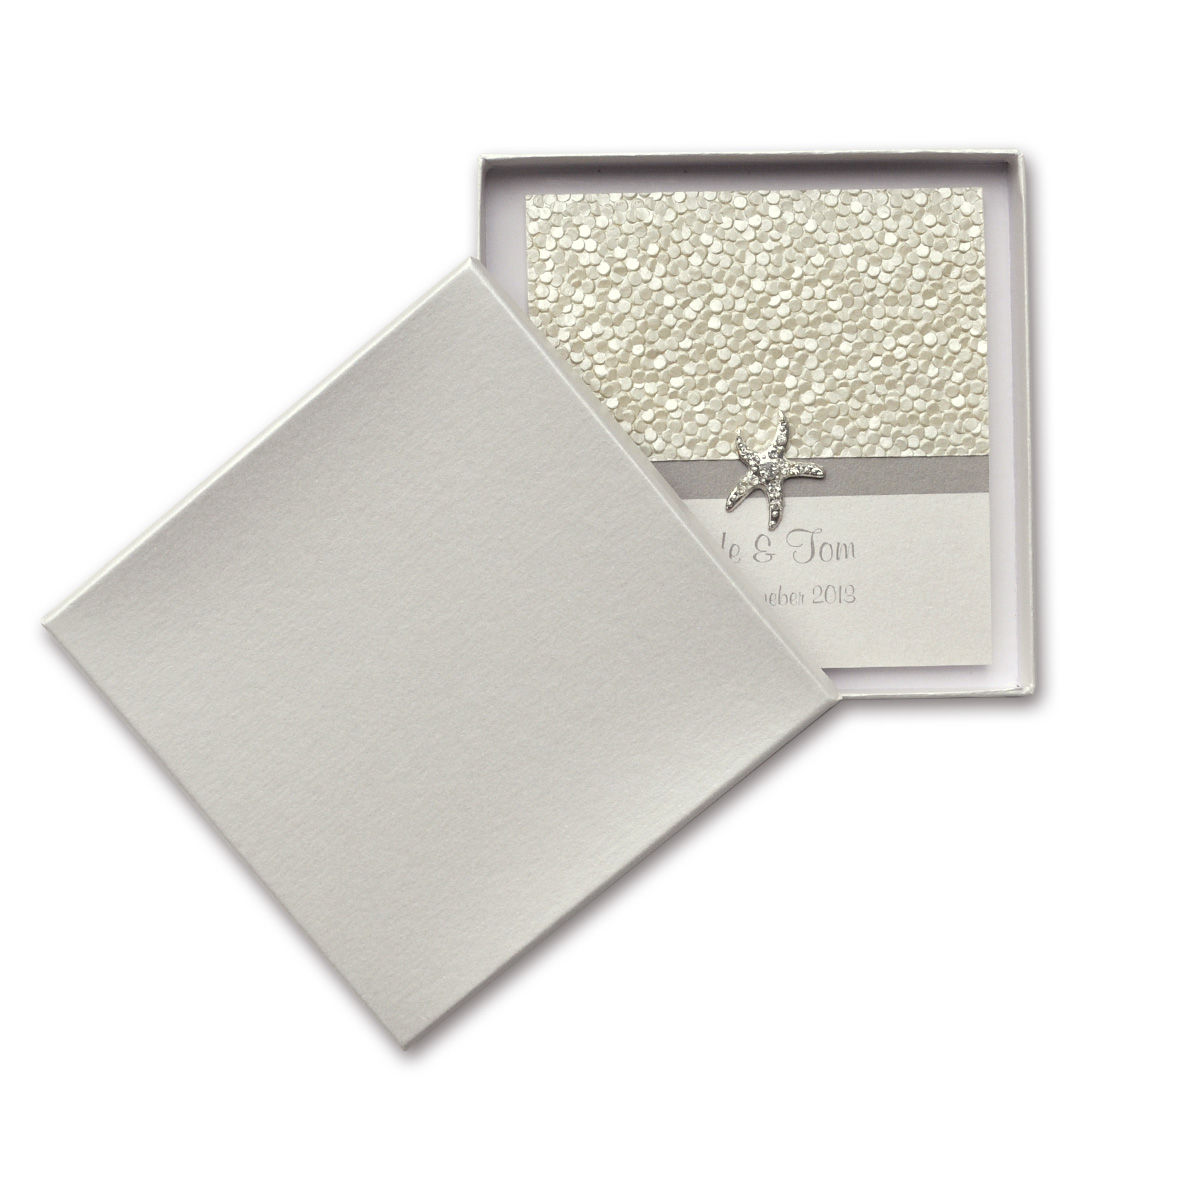 Rigid Invitation Box - Square - S.Dream Quartz (150x150mm)